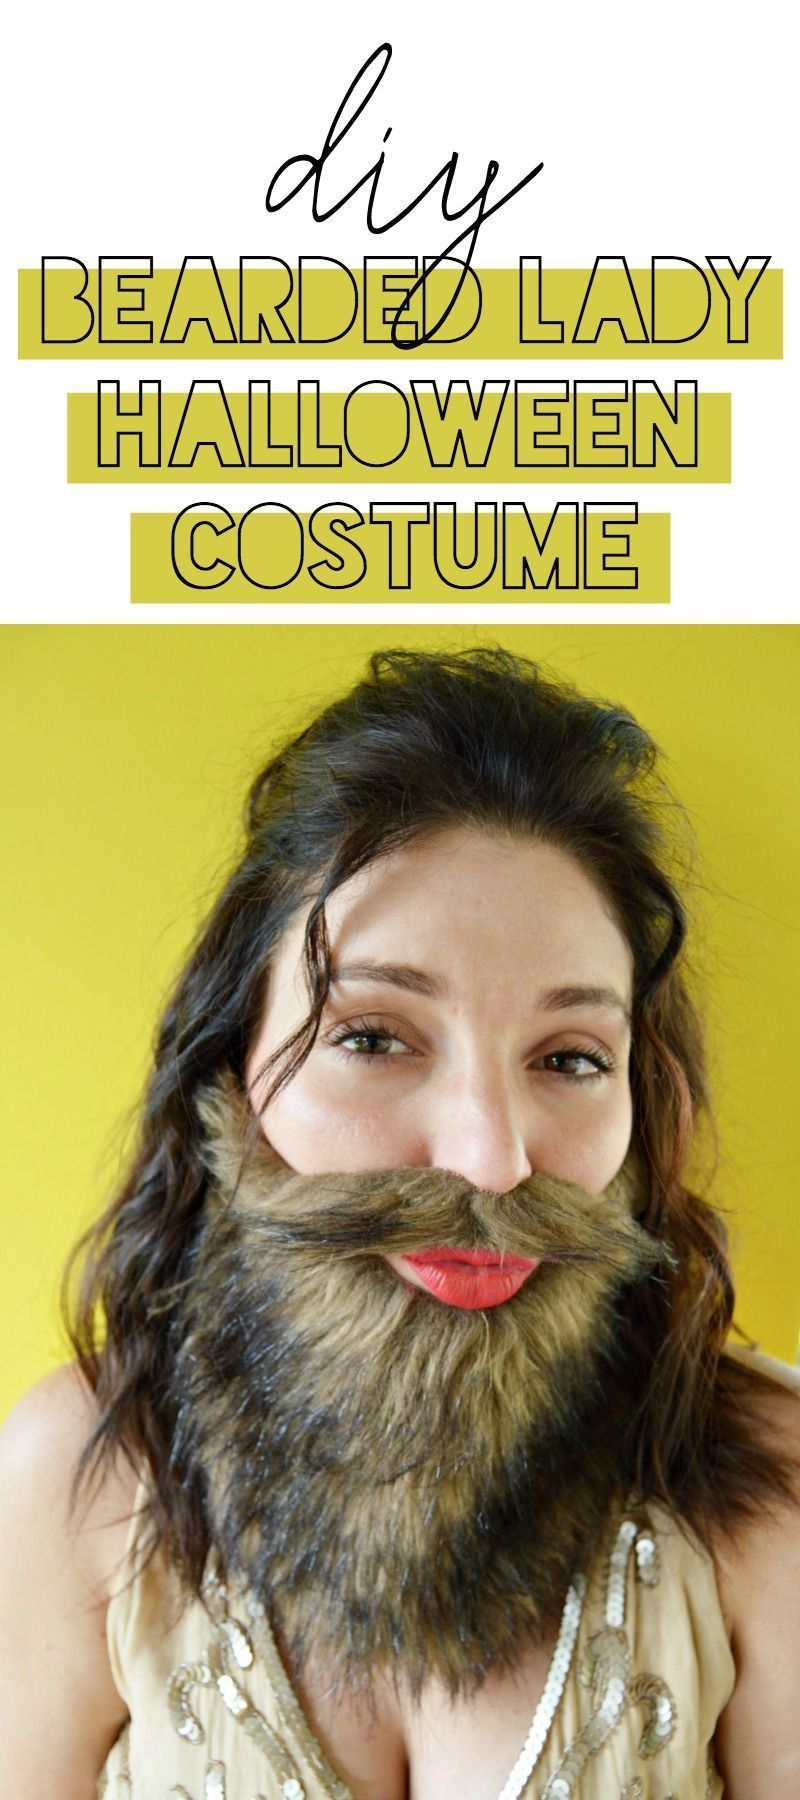 This DIY Bearded Lady Halloween Costume is so fun and easy! DIY Beard Easy DIY #Wholesale Halloween Costumes